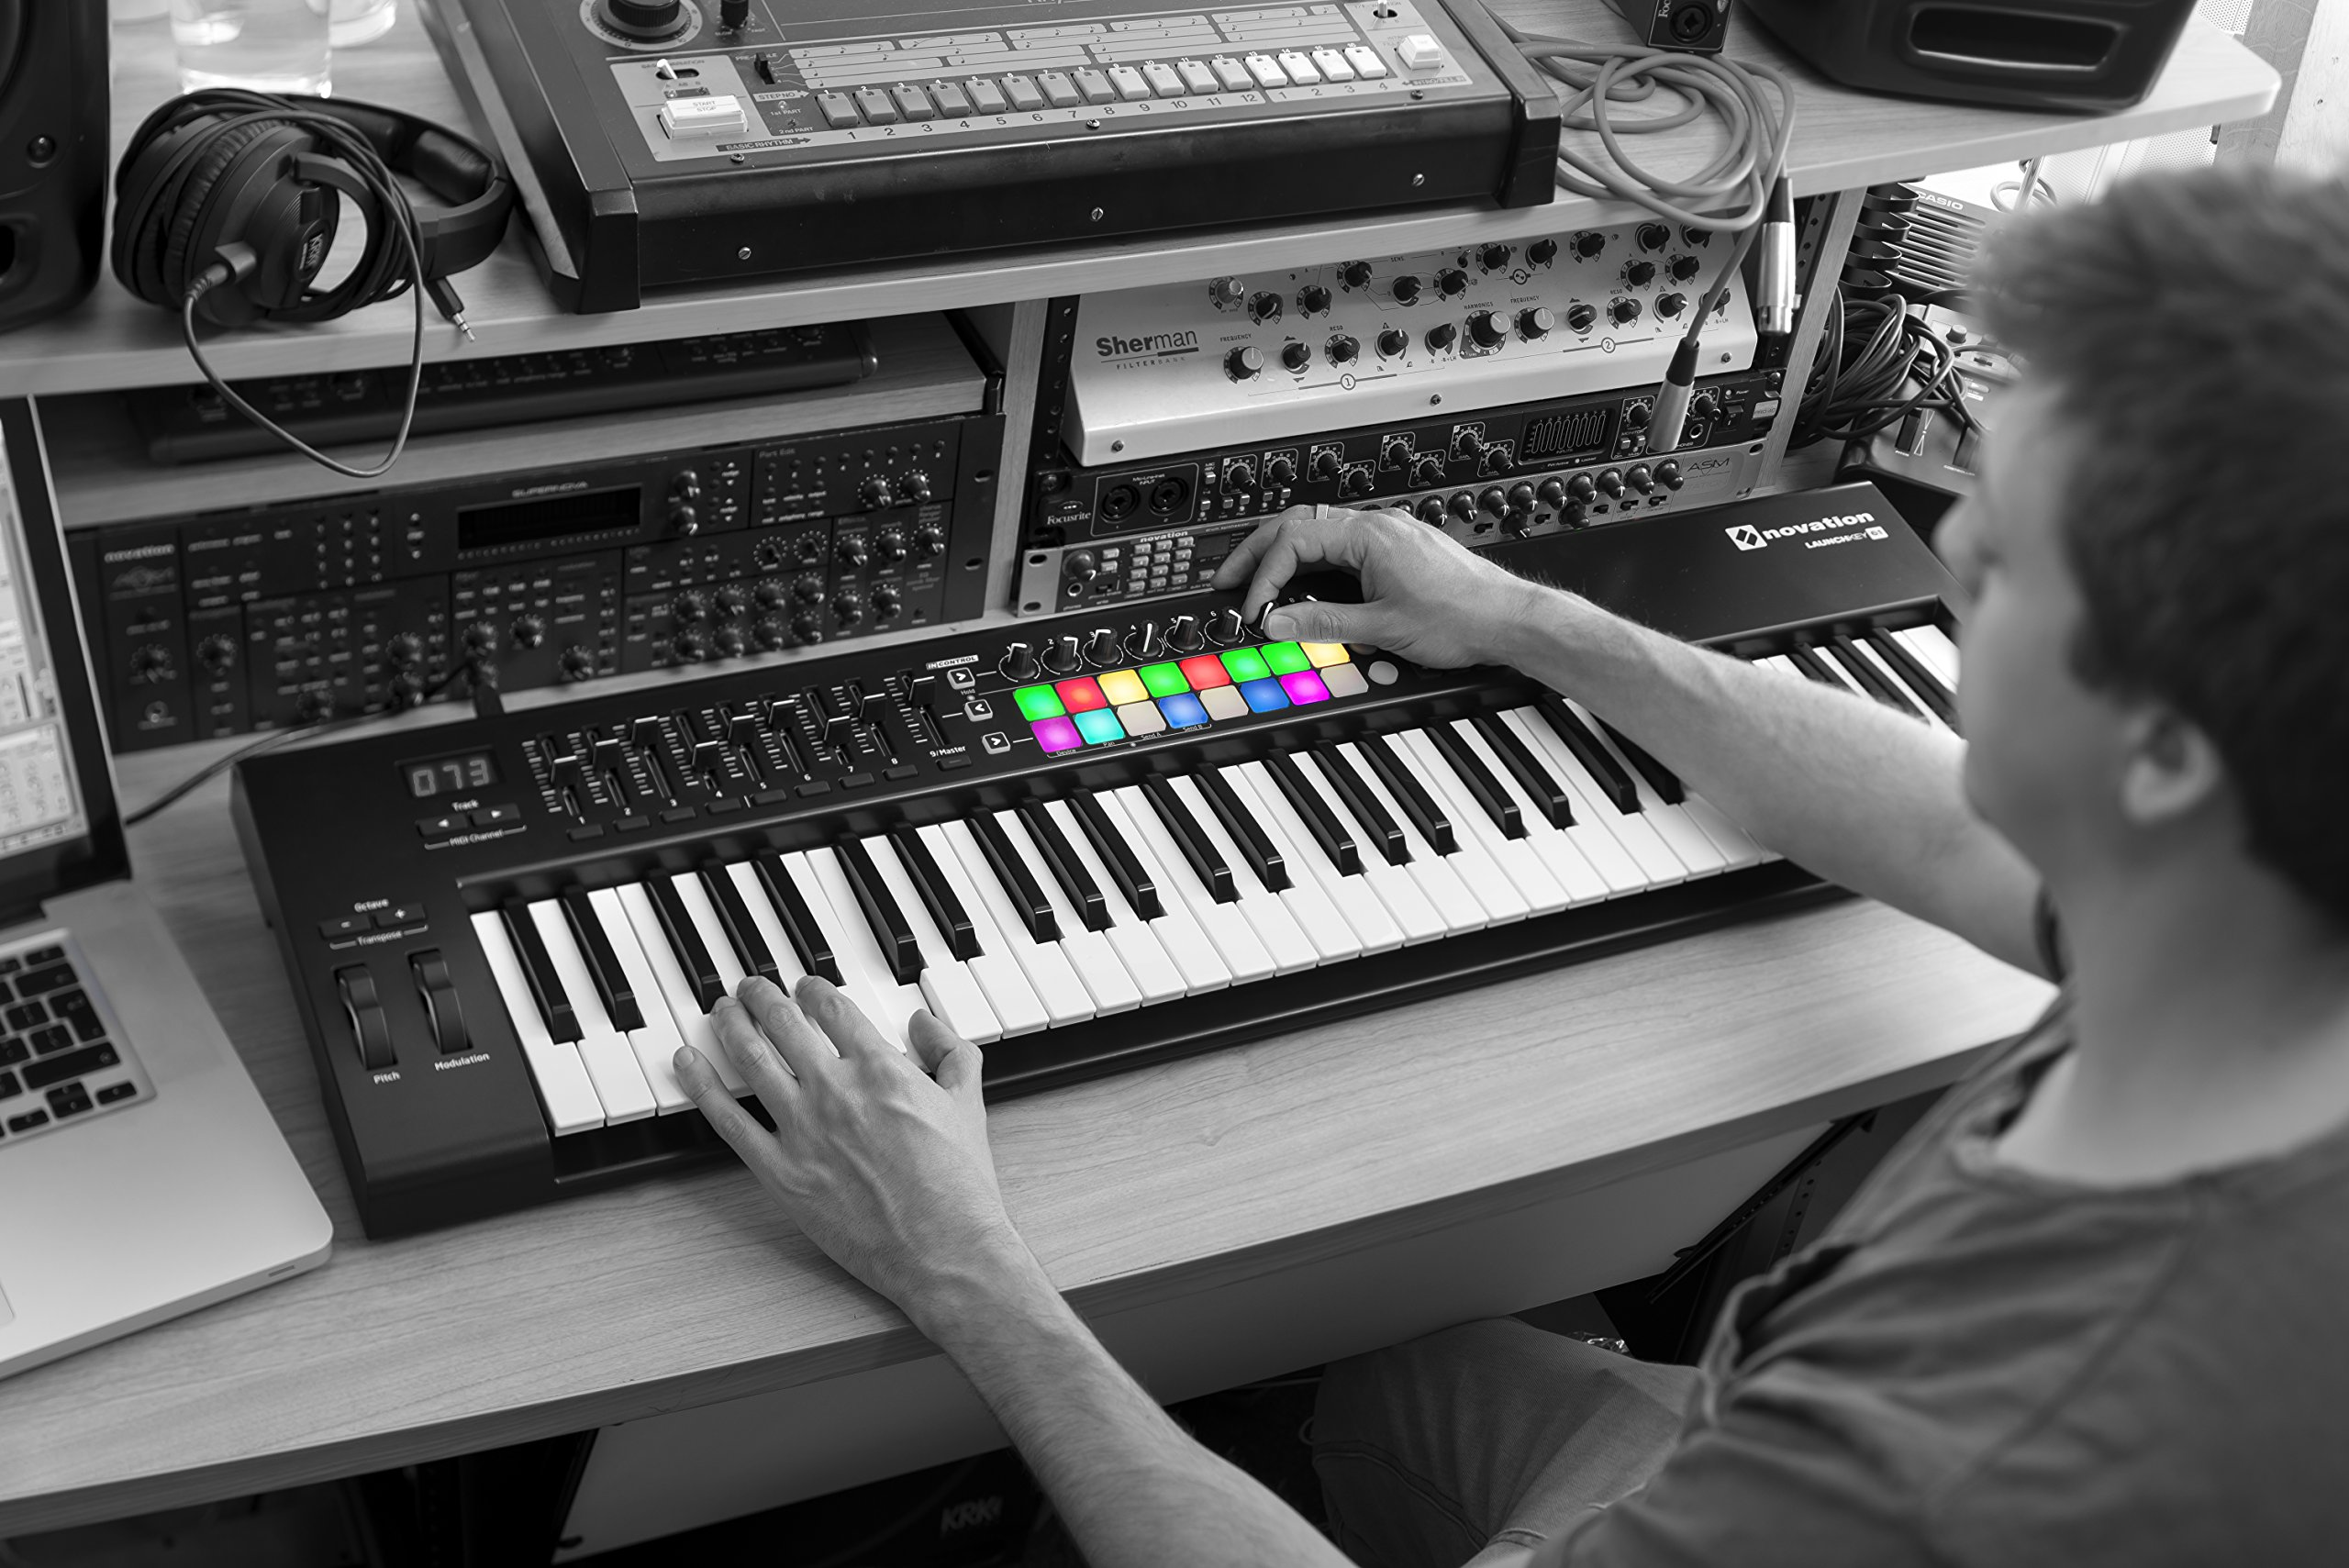 Novation Launchkey 61 USB Keyboard Controller for Ableton Live, 61-Note MK2 Version by Novation (Image #4)